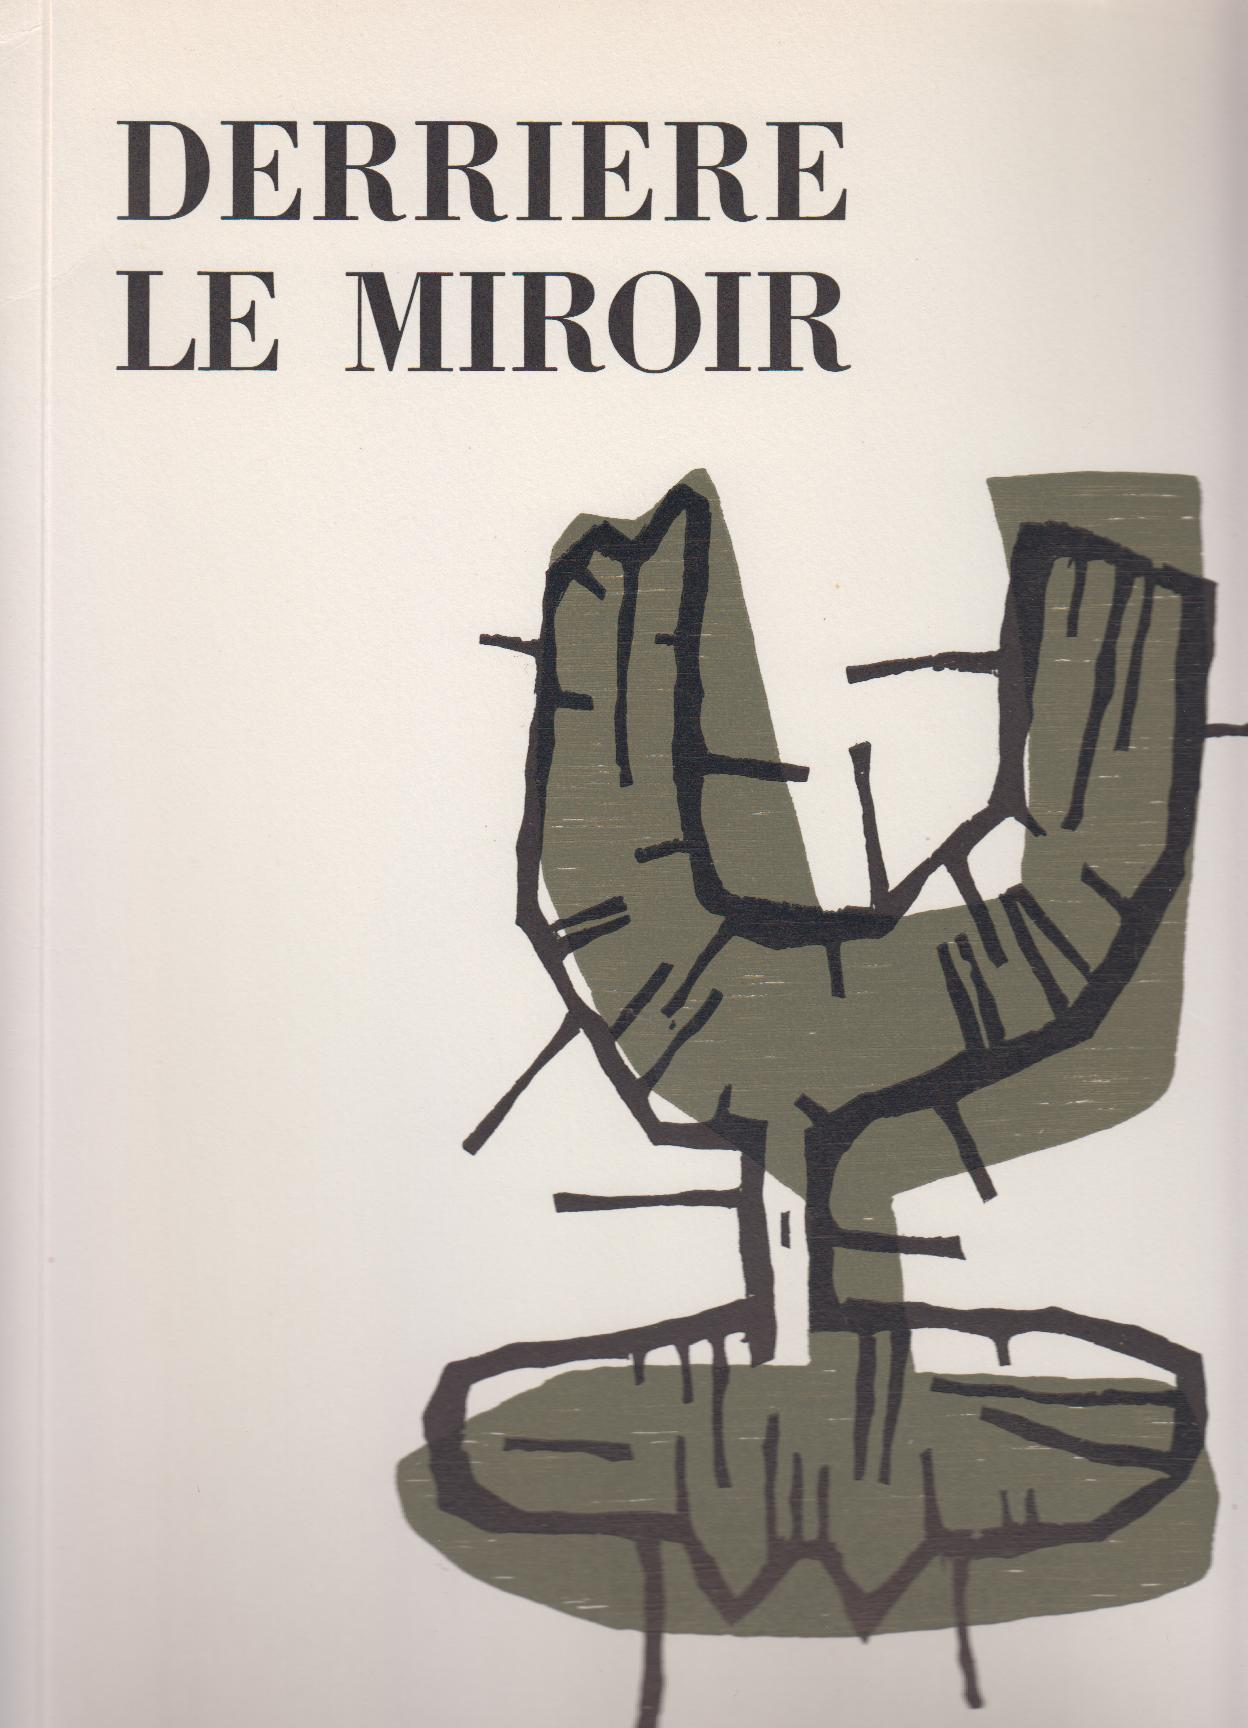 Derri re le miroir 10 ans d 39 dition 1946 1956 georges for Maeght derriere le miroir